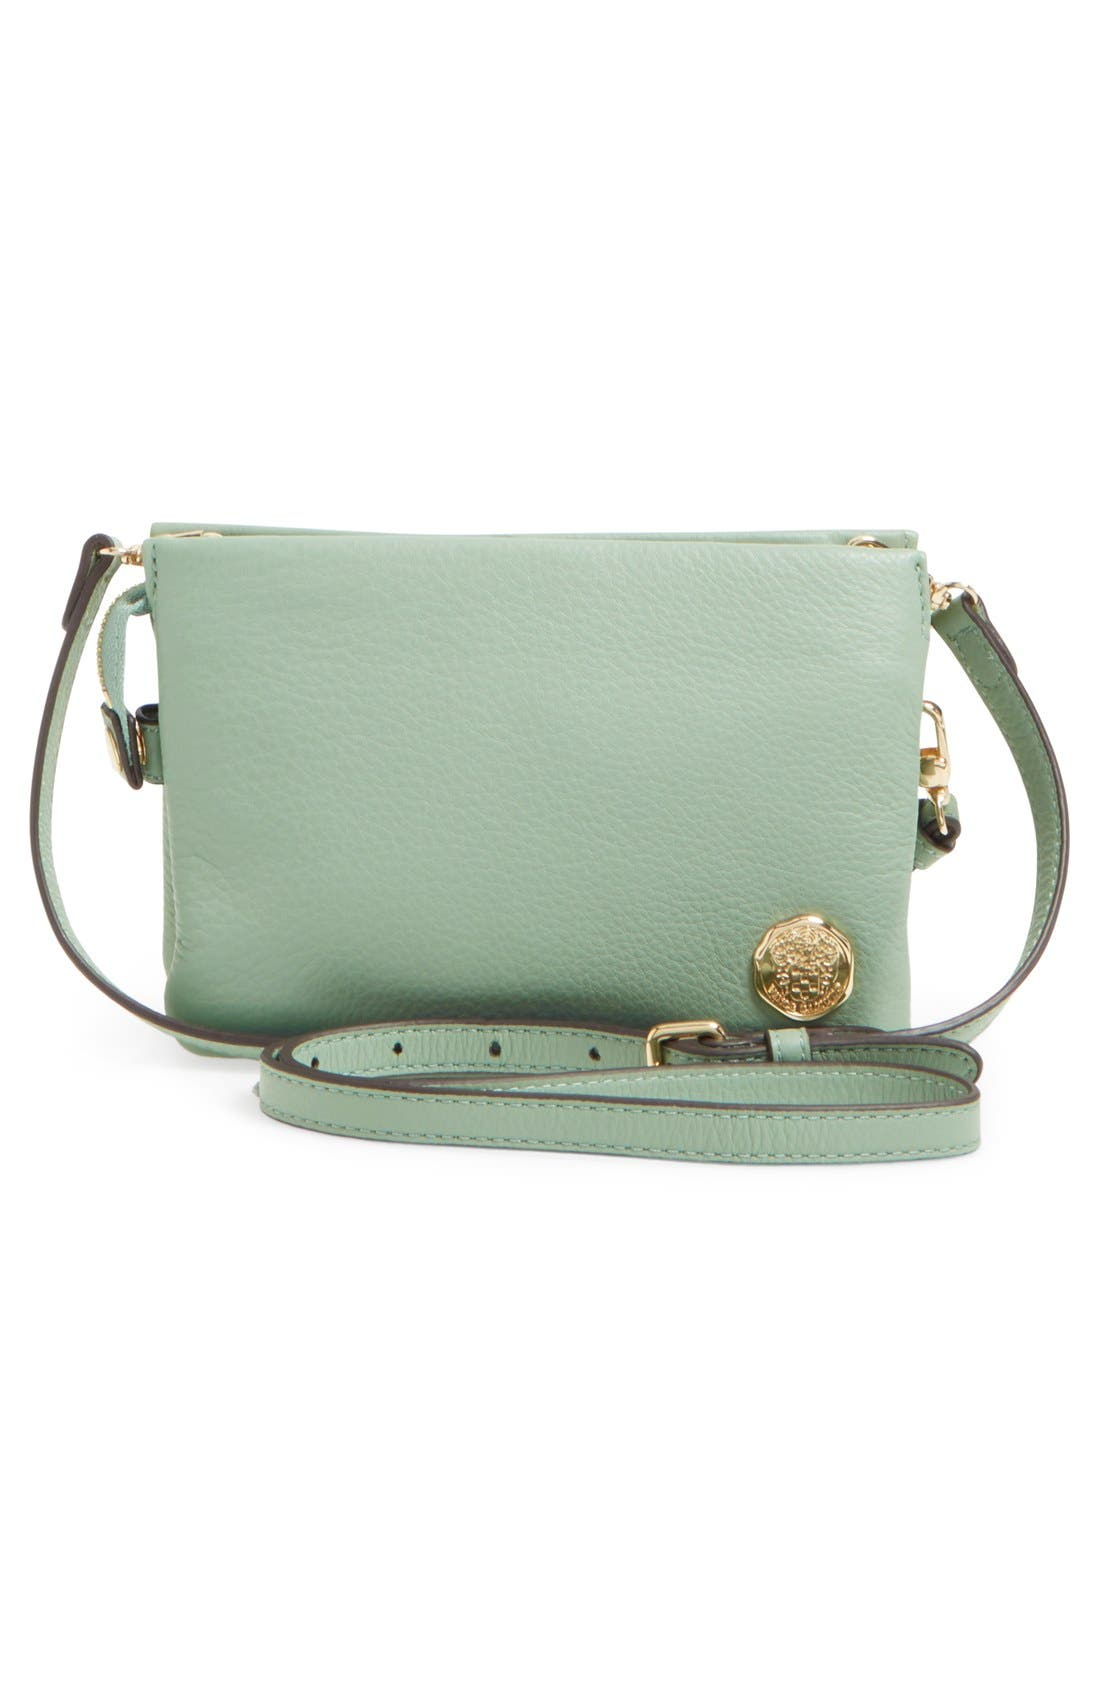 'Cami' Leather Crossbody Bag,                             Alternate thumbnail 84, color,